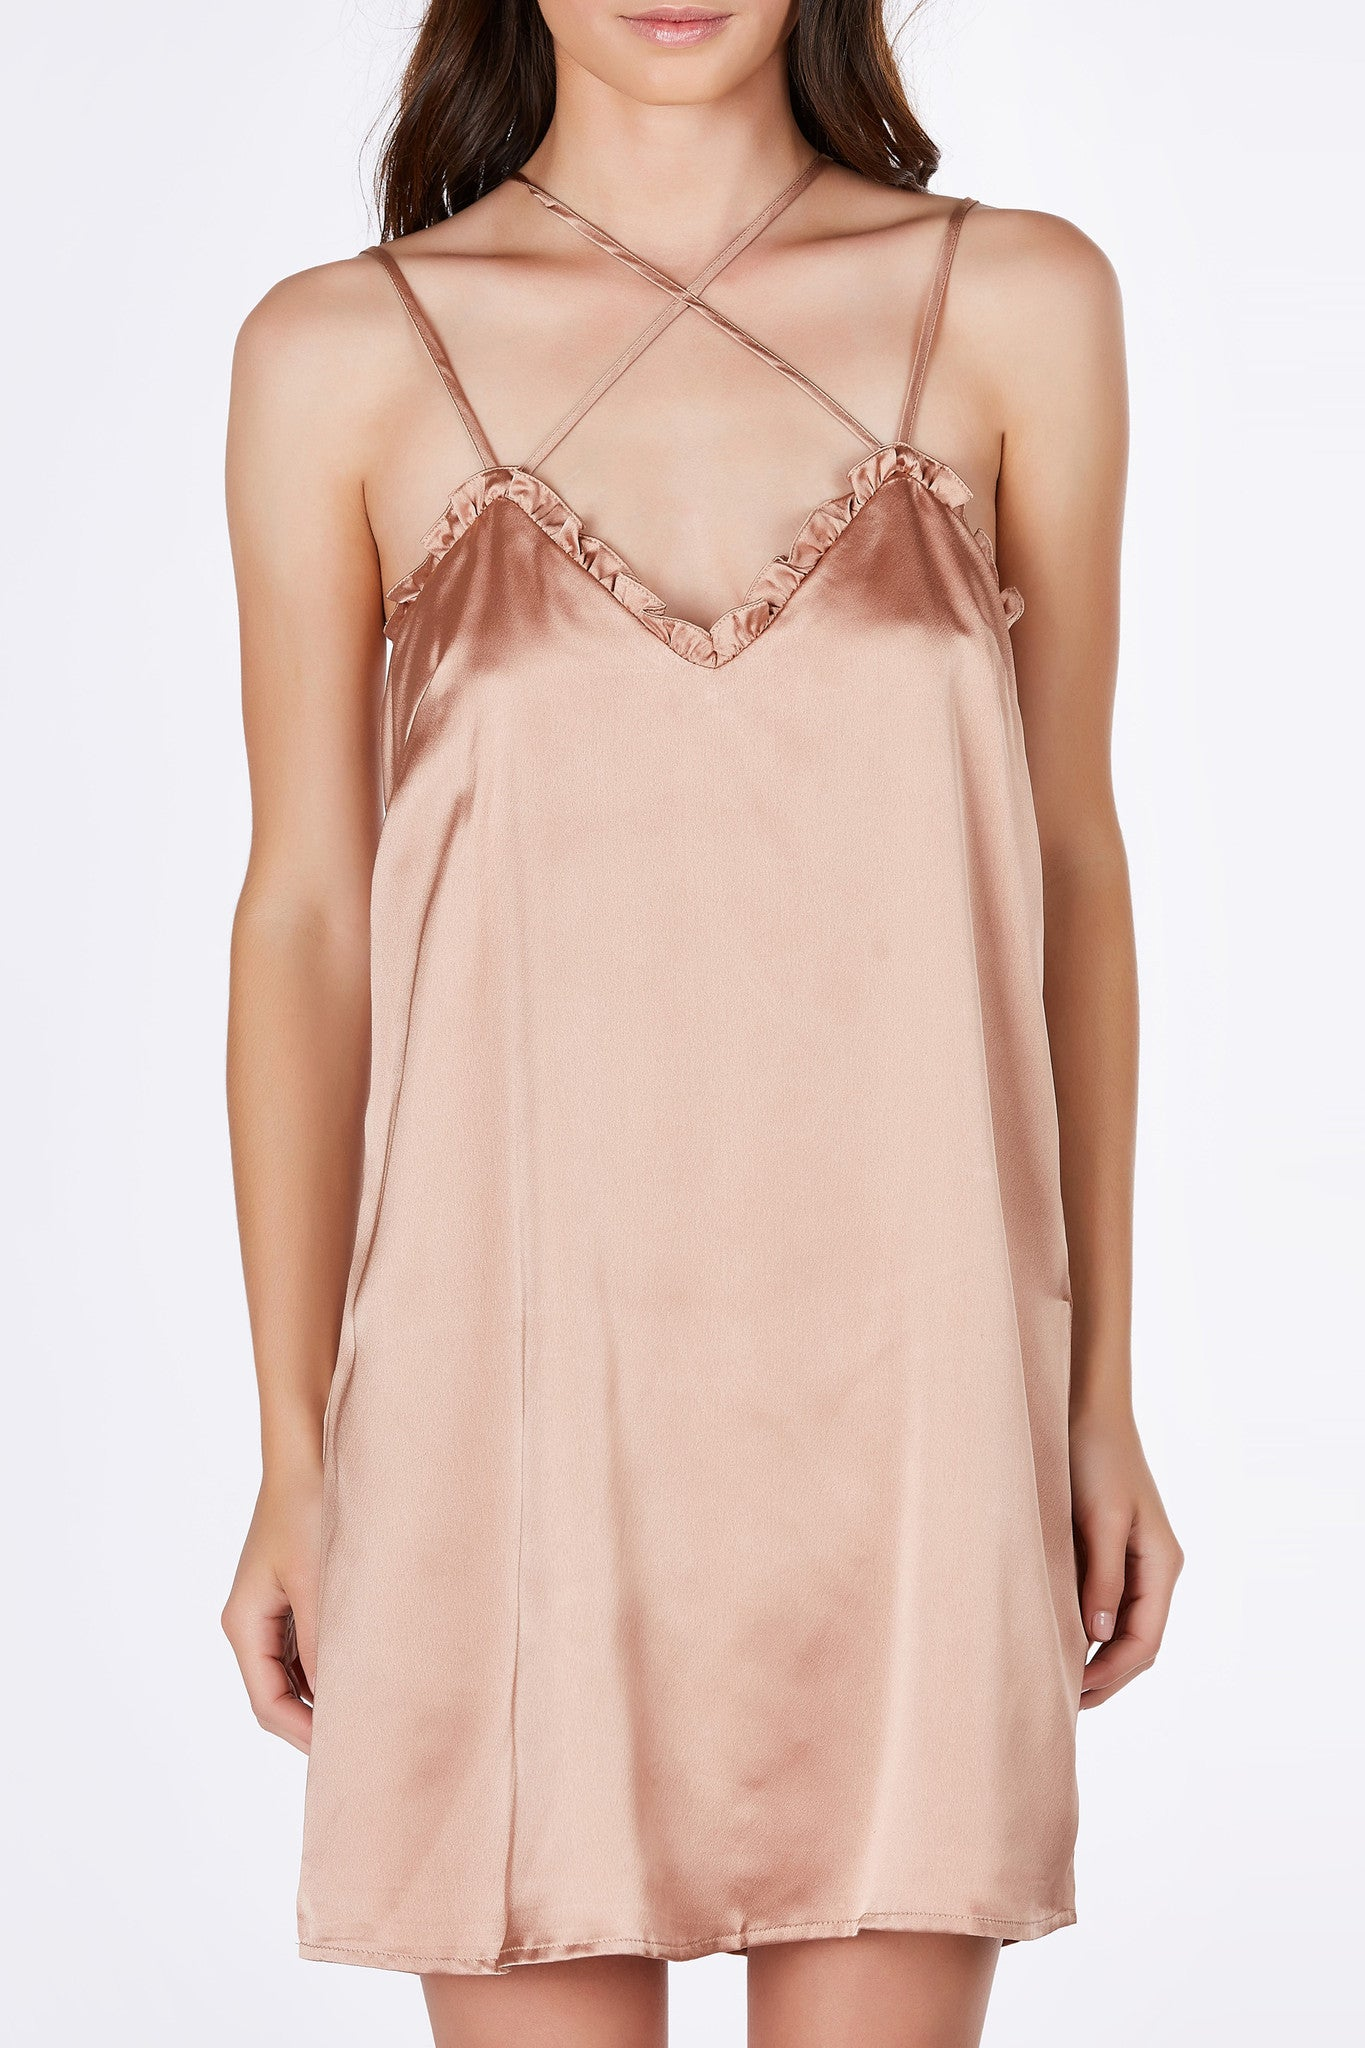 A gorgeous slip dress with a chic silky finish. Multi strap detailing that criss crosses in both front and back. Ruffled neckline for a feminine touch. Fully lined with a straight boxy cut. Layer over a clean white tee for a stylish 90's inspired outfit!